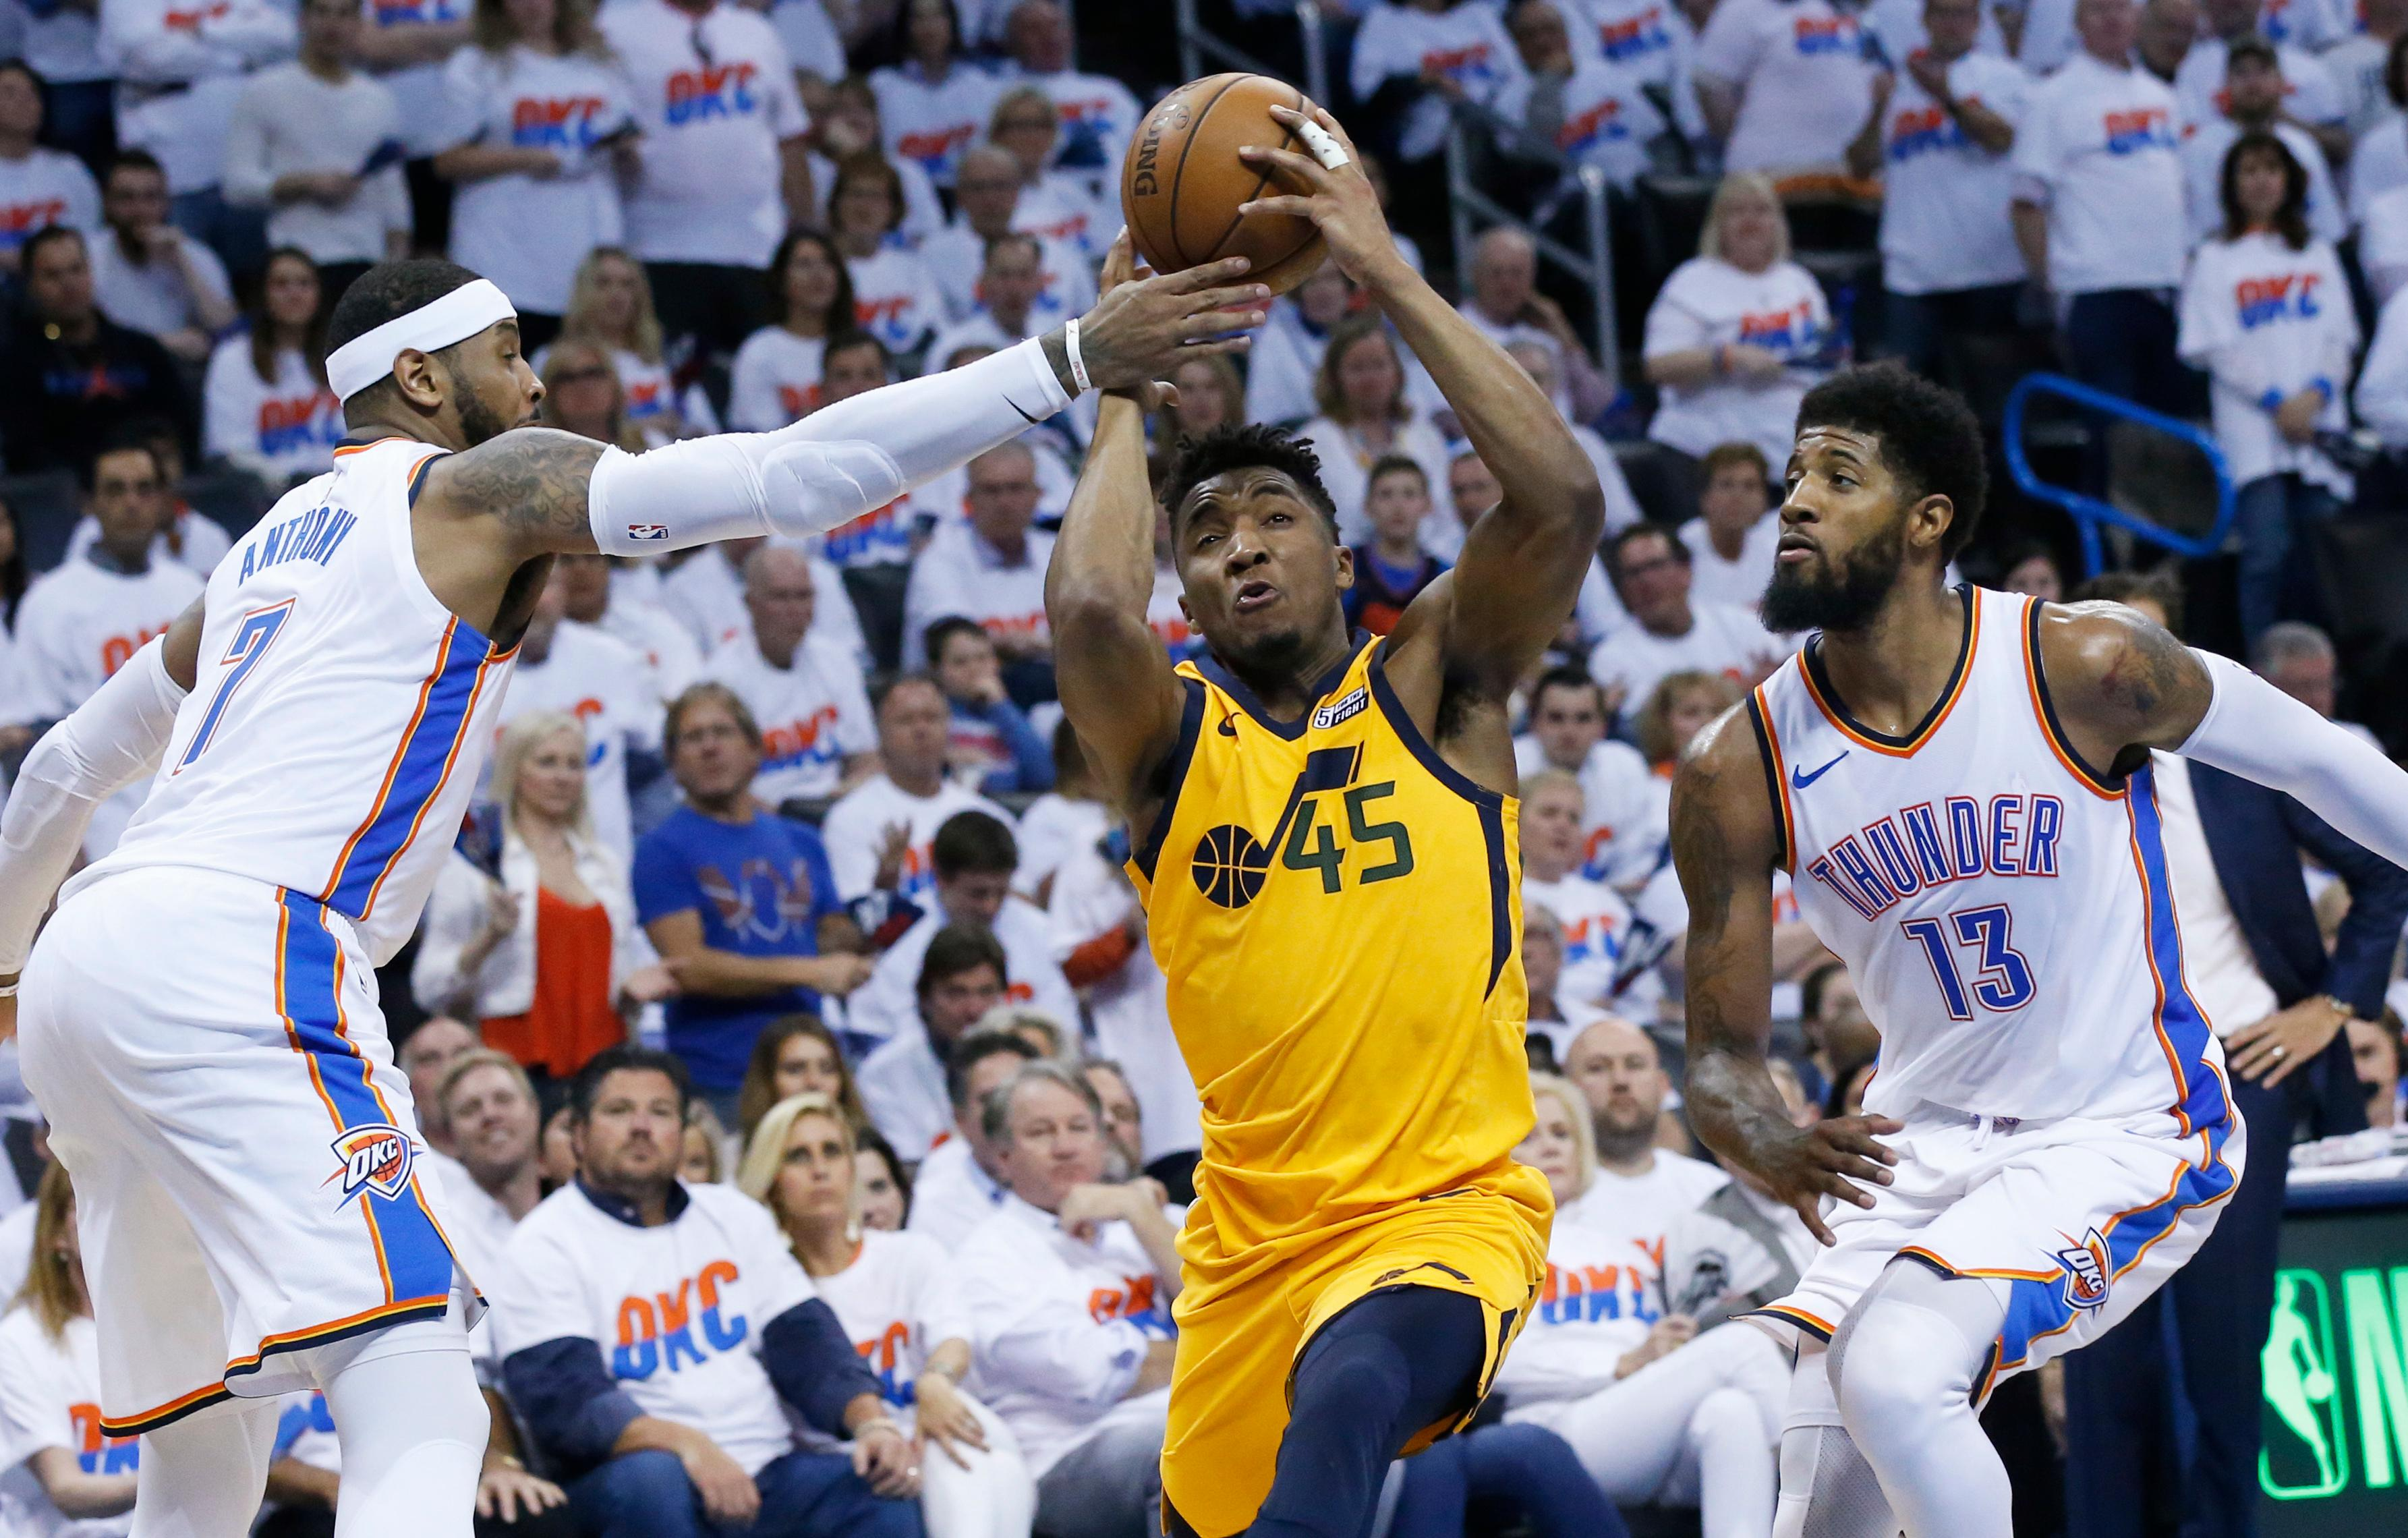 Oklahoma City Thunder forward Carmelo Anthony (7) reaches in to knock the ball away from Utah Jazz guard Donovan Mitchell (45) as Mitchell drives between Anthony and forward Paul George (13) in the second half of Game 2 of an NBA basketball first-round playoff series in Oklahoma City, Wednesday, April 18, 2018. (AP Photo/Sue Ogrocki)